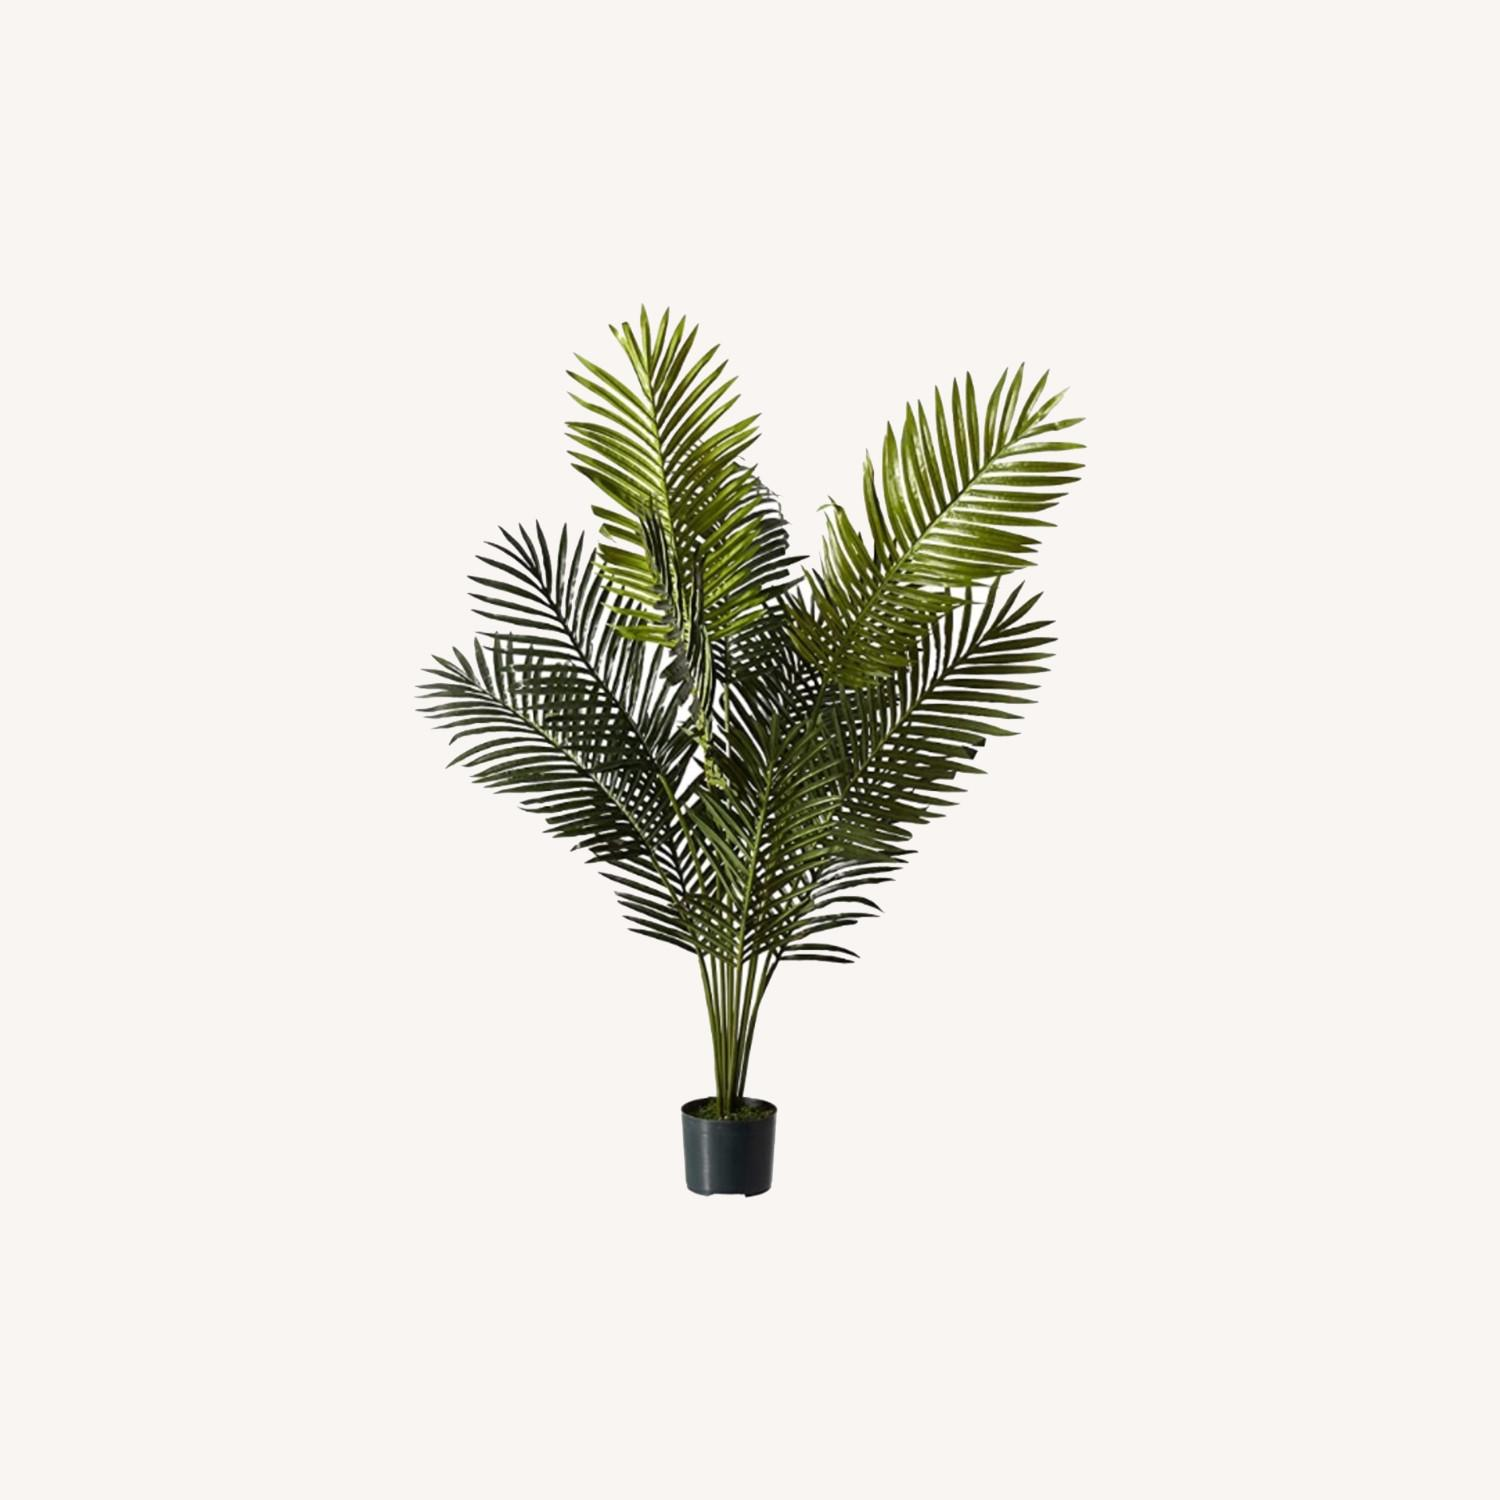 Artificial Plant 5ft. - image-0